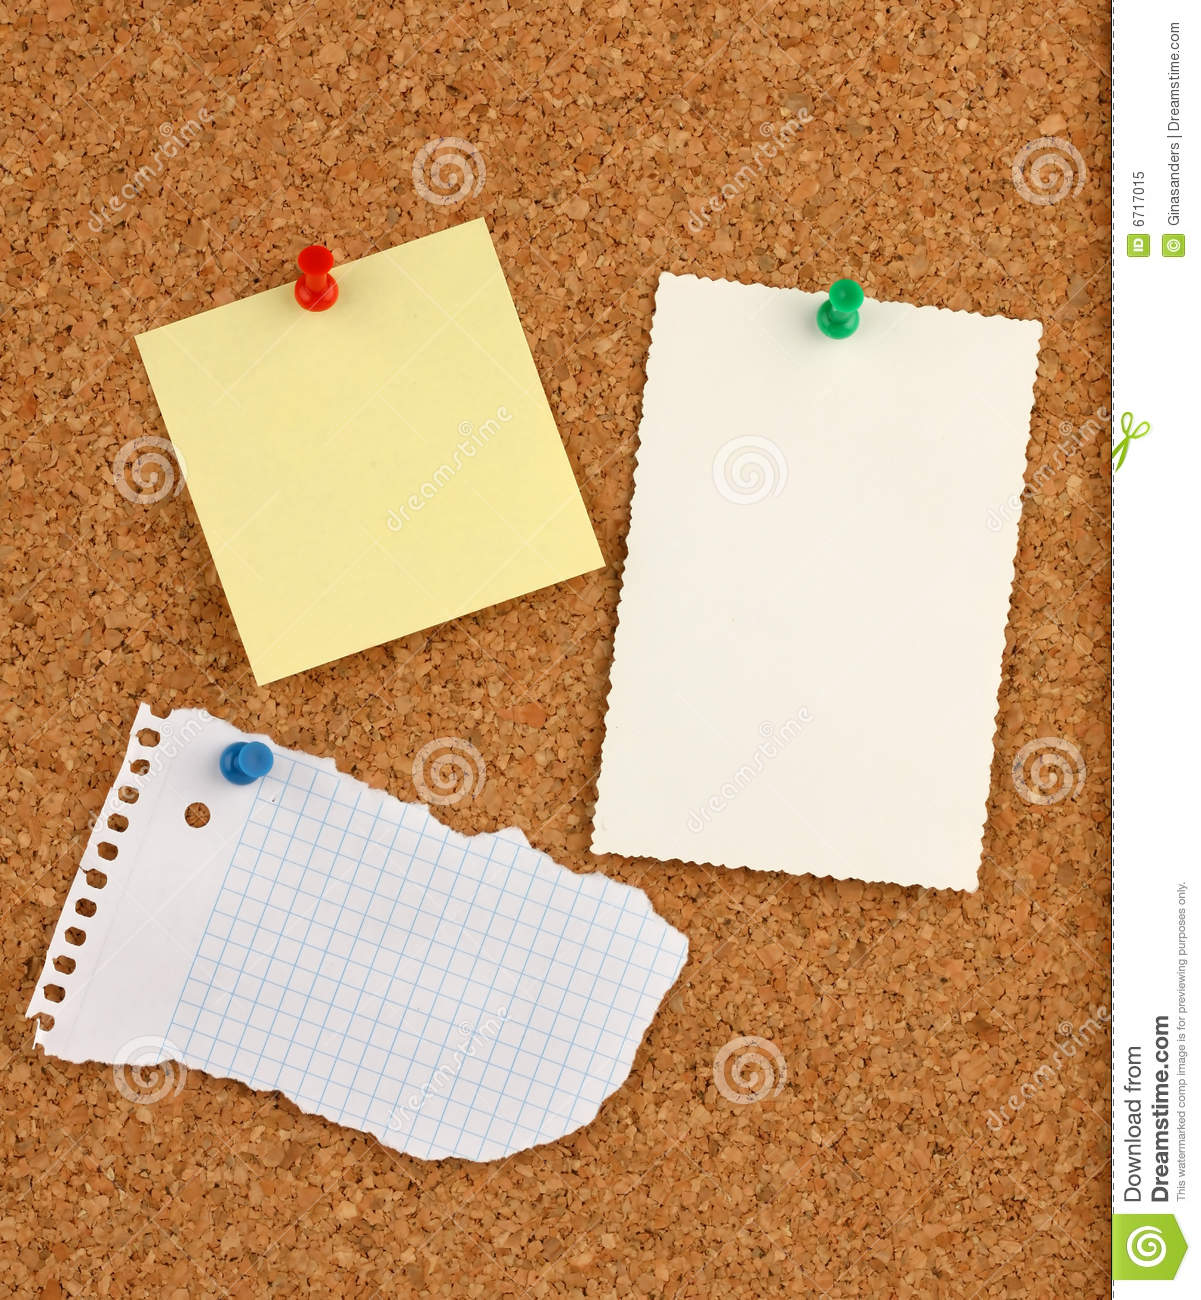 pin board royalty free stock photo image 6717015 free clipart images office supplies free clipart office supplies